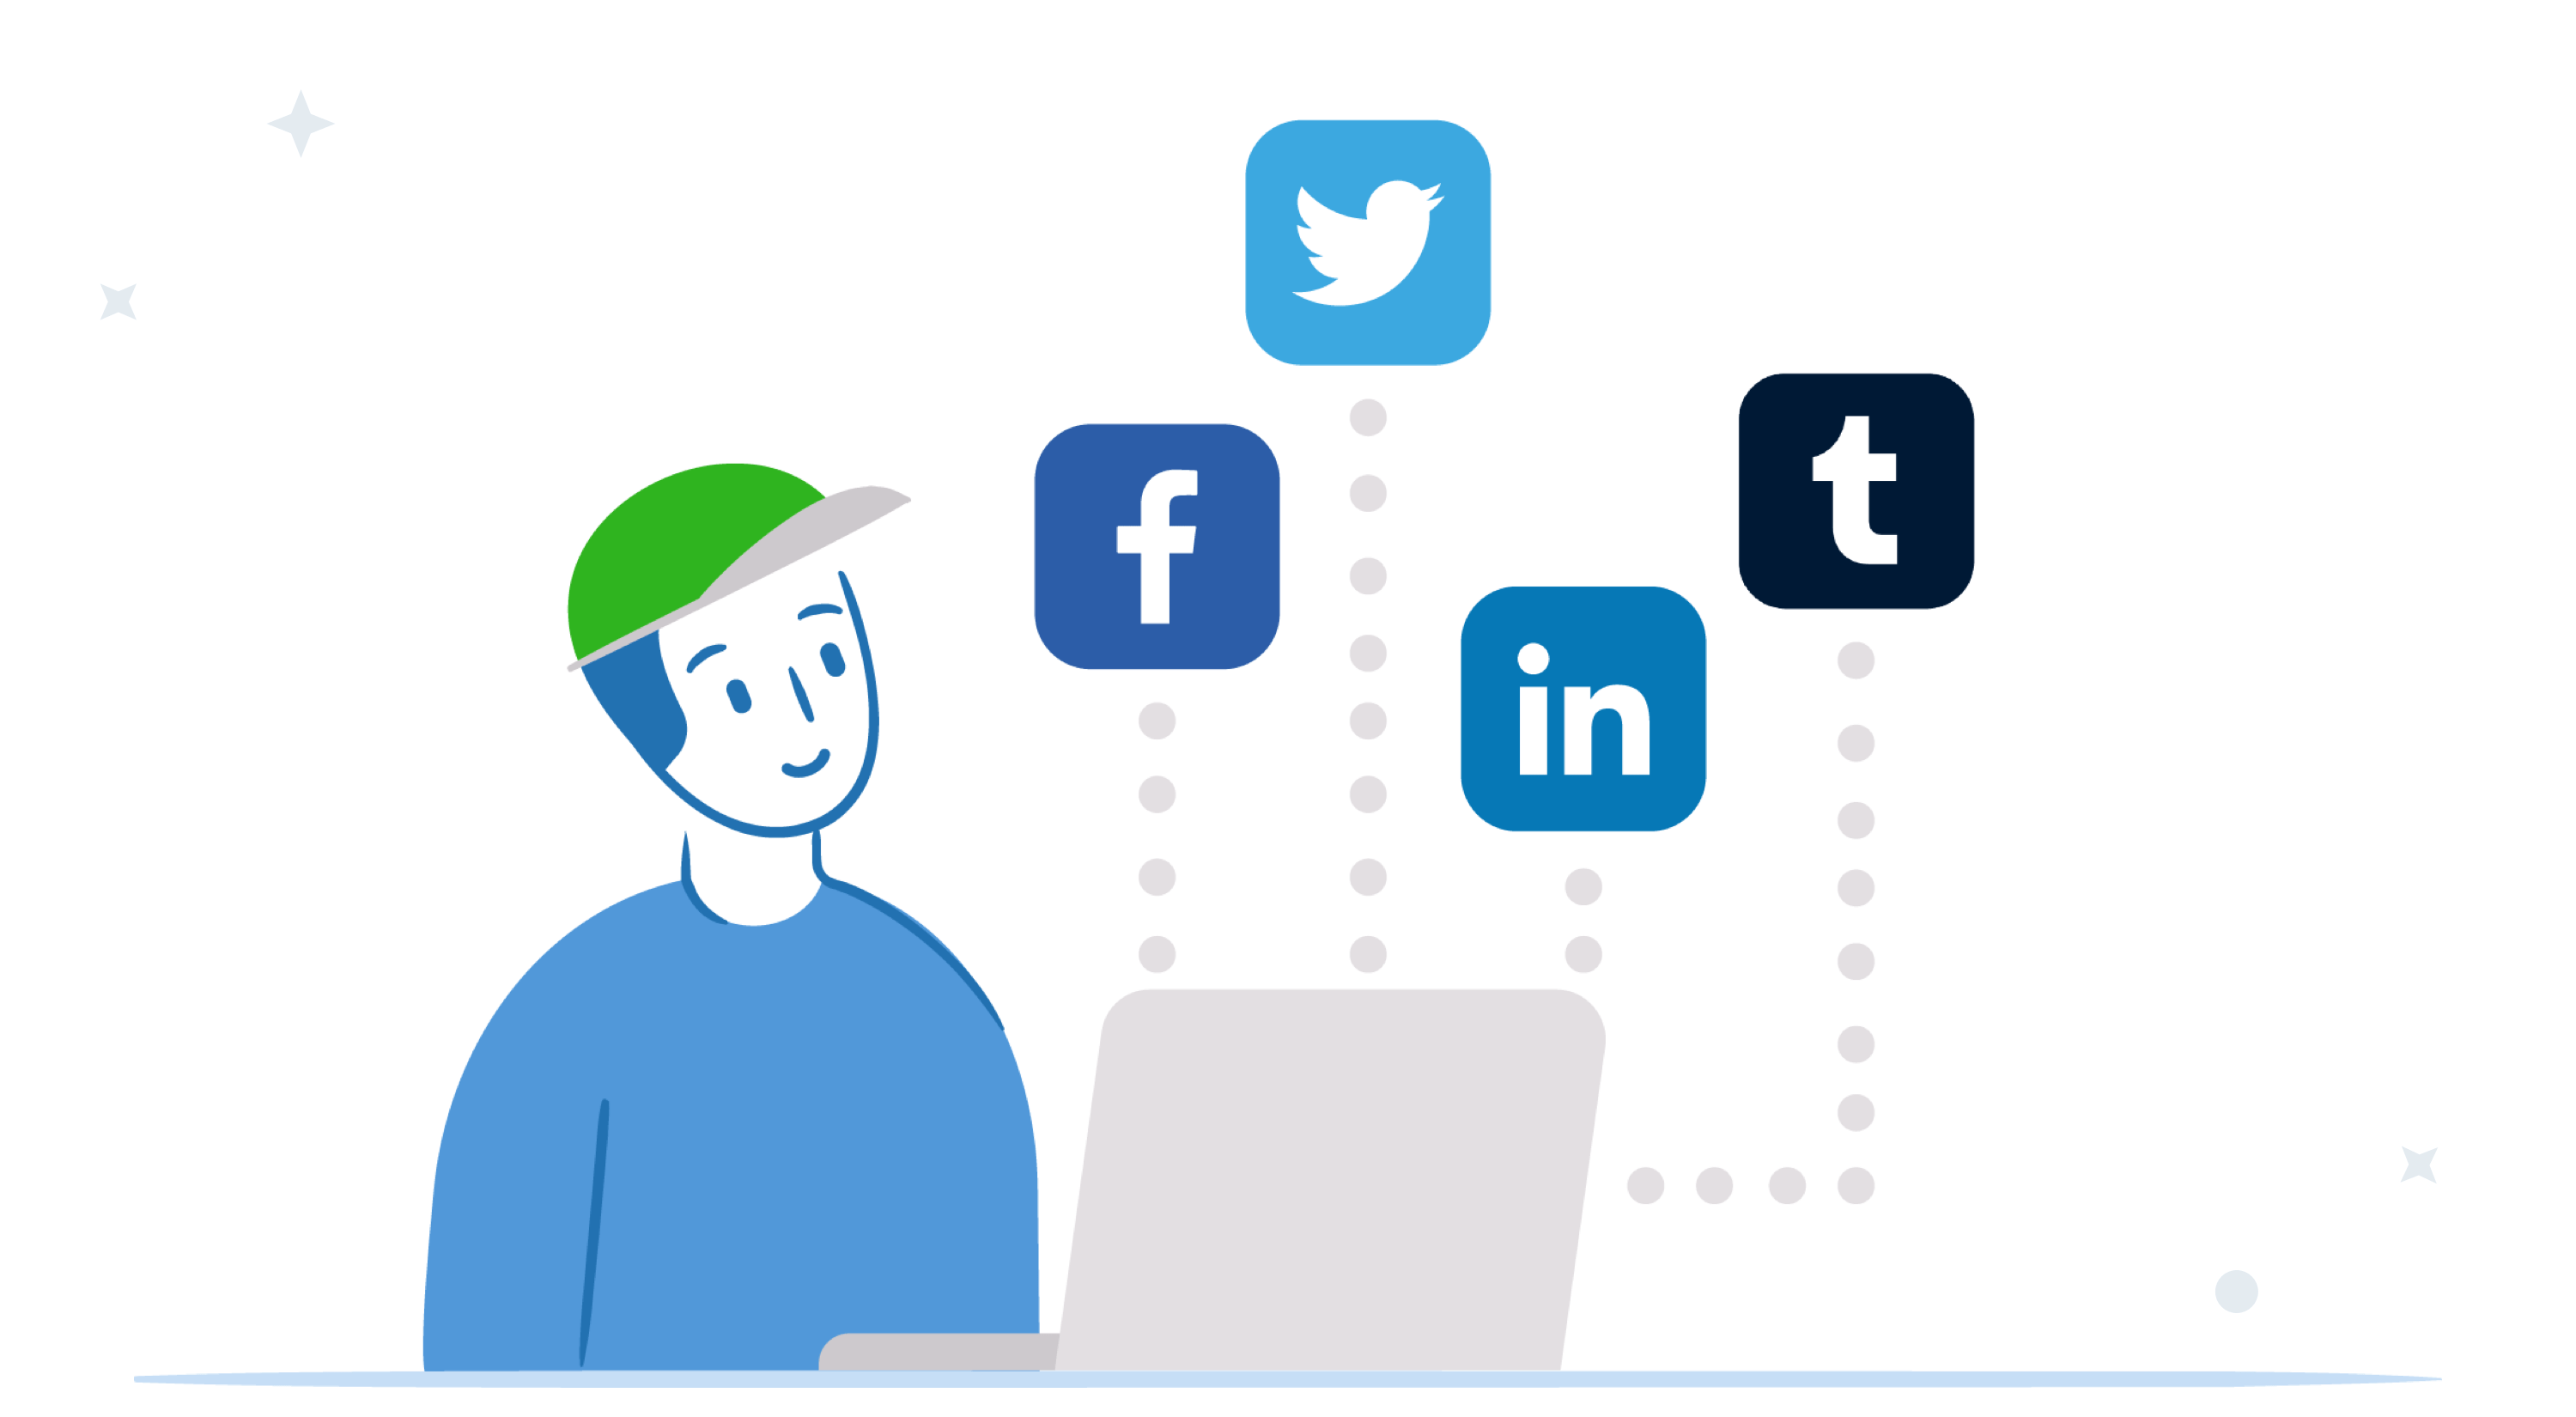 Use Jetpack to Automate Social Media Sharing from WordPress